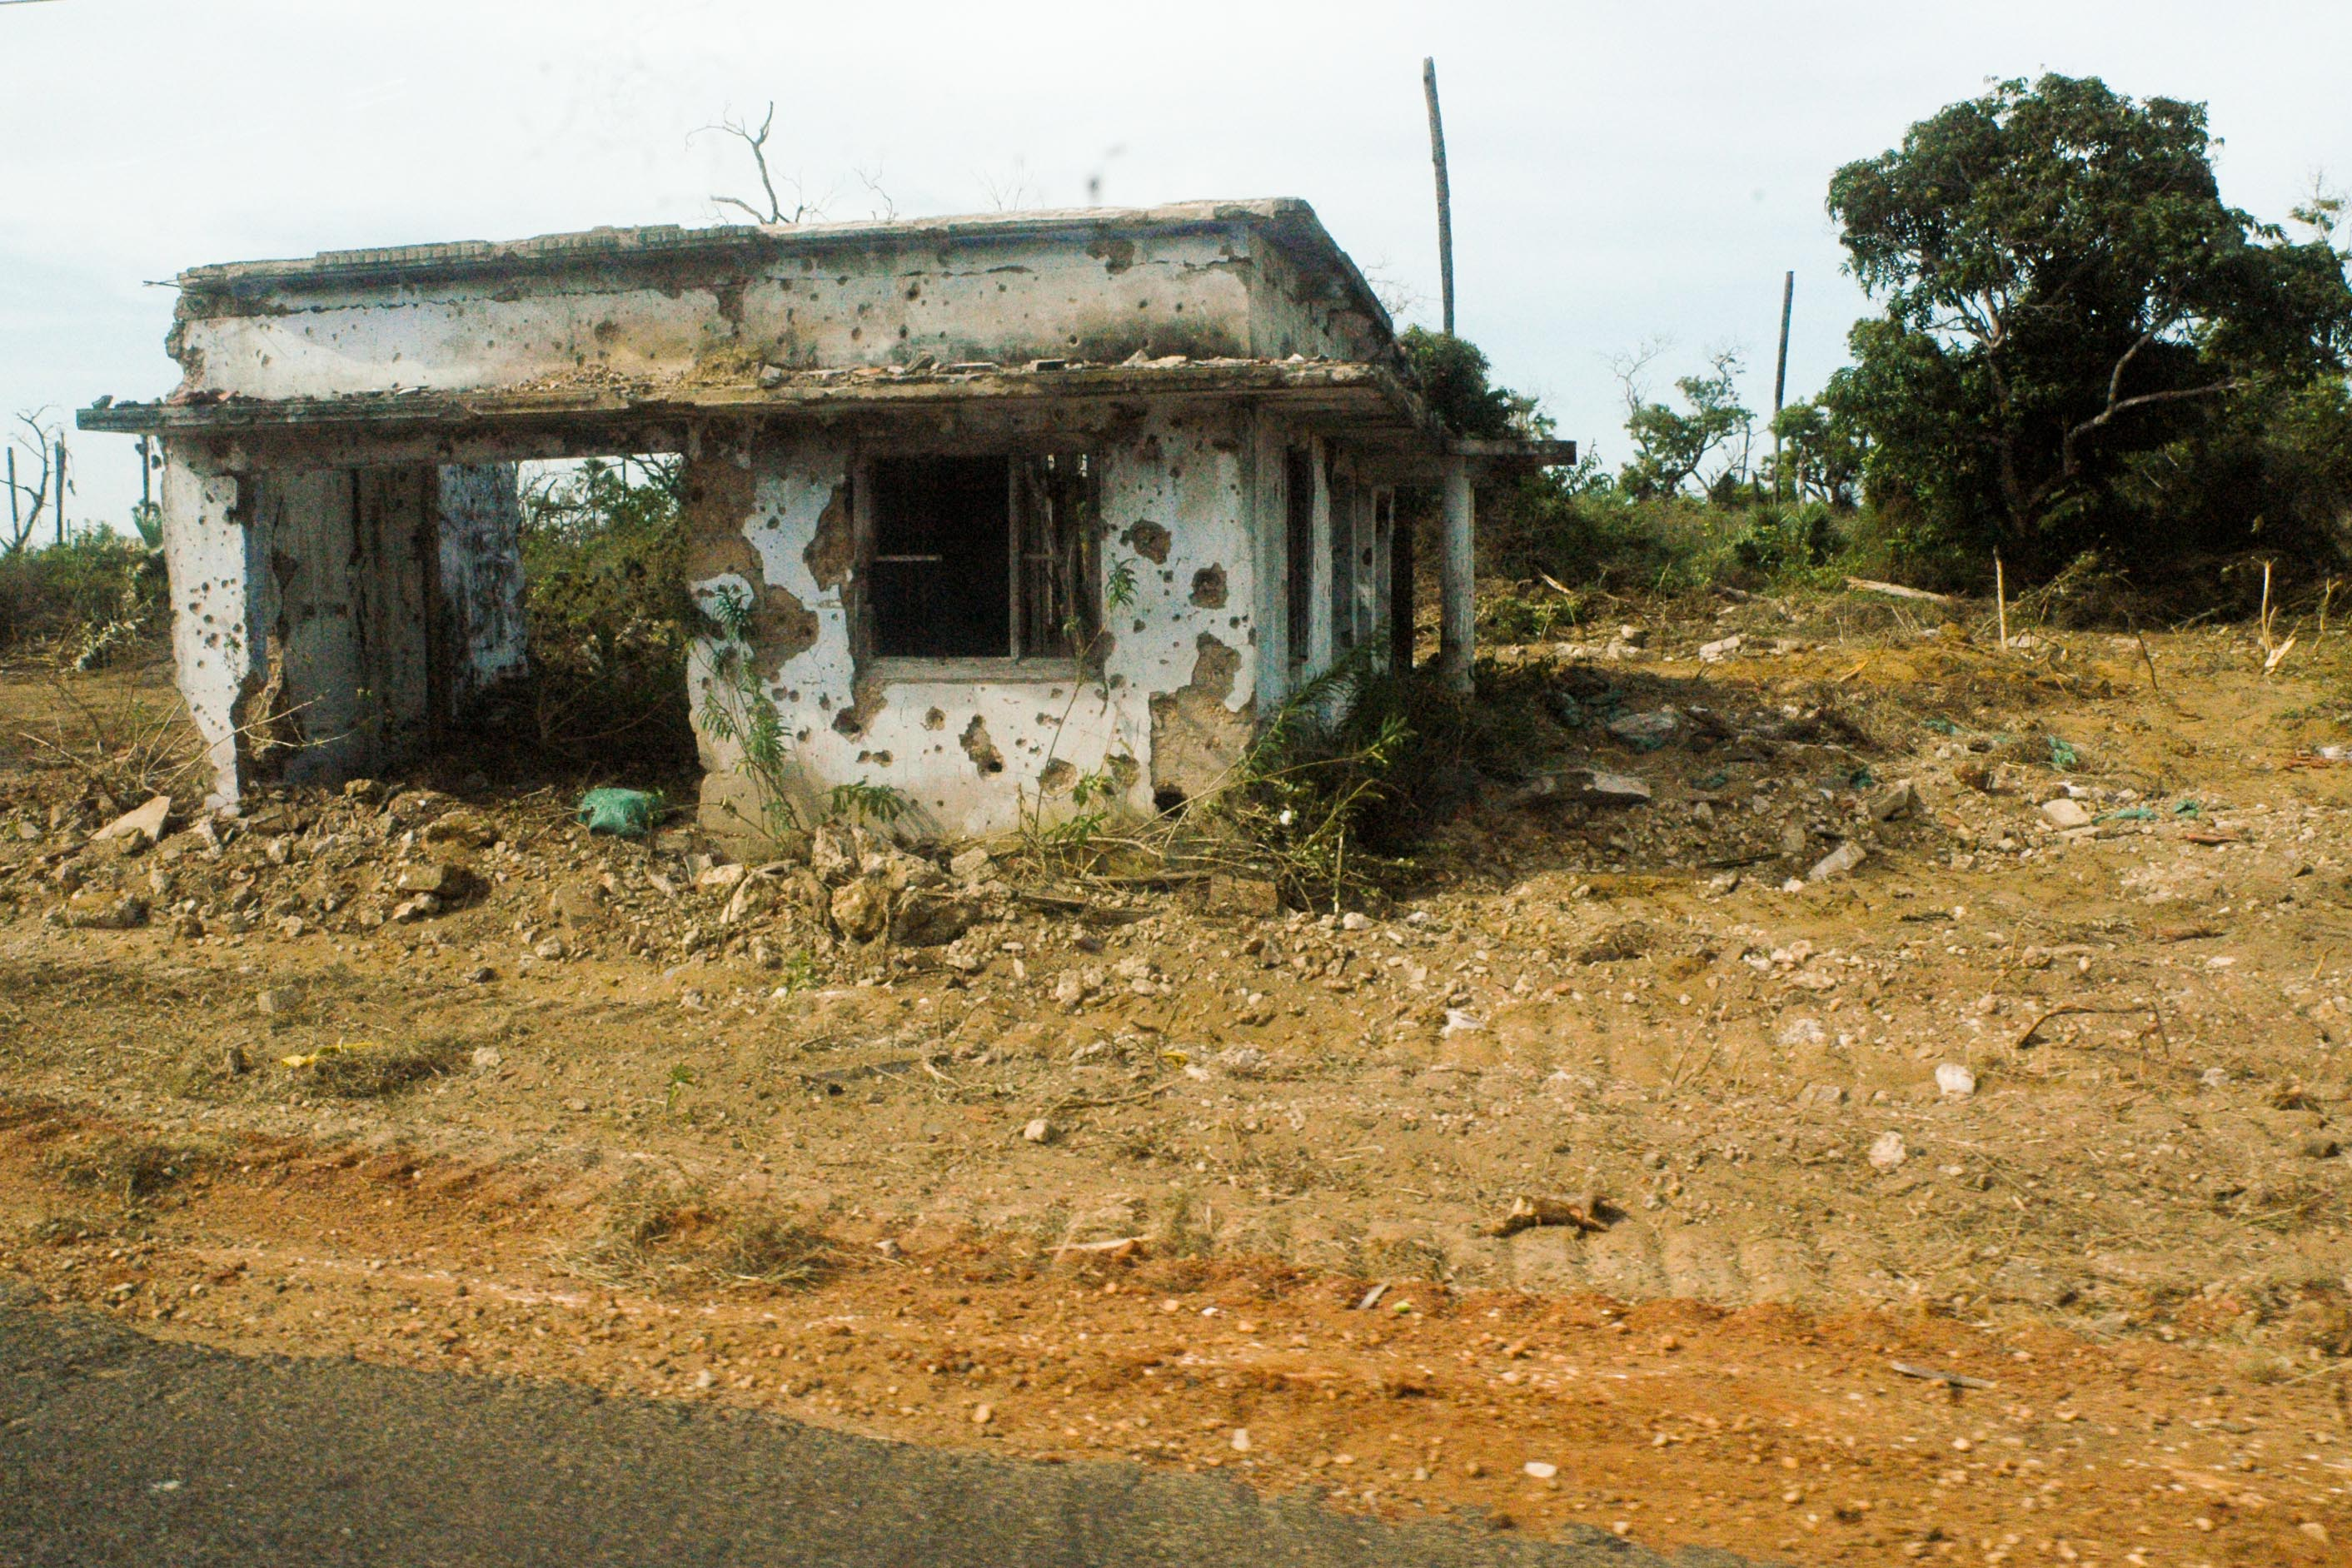 A war-damaged home in northern Sri Lanka. At least 160,000 houses need to be repaired or reconstructed in the Vanni